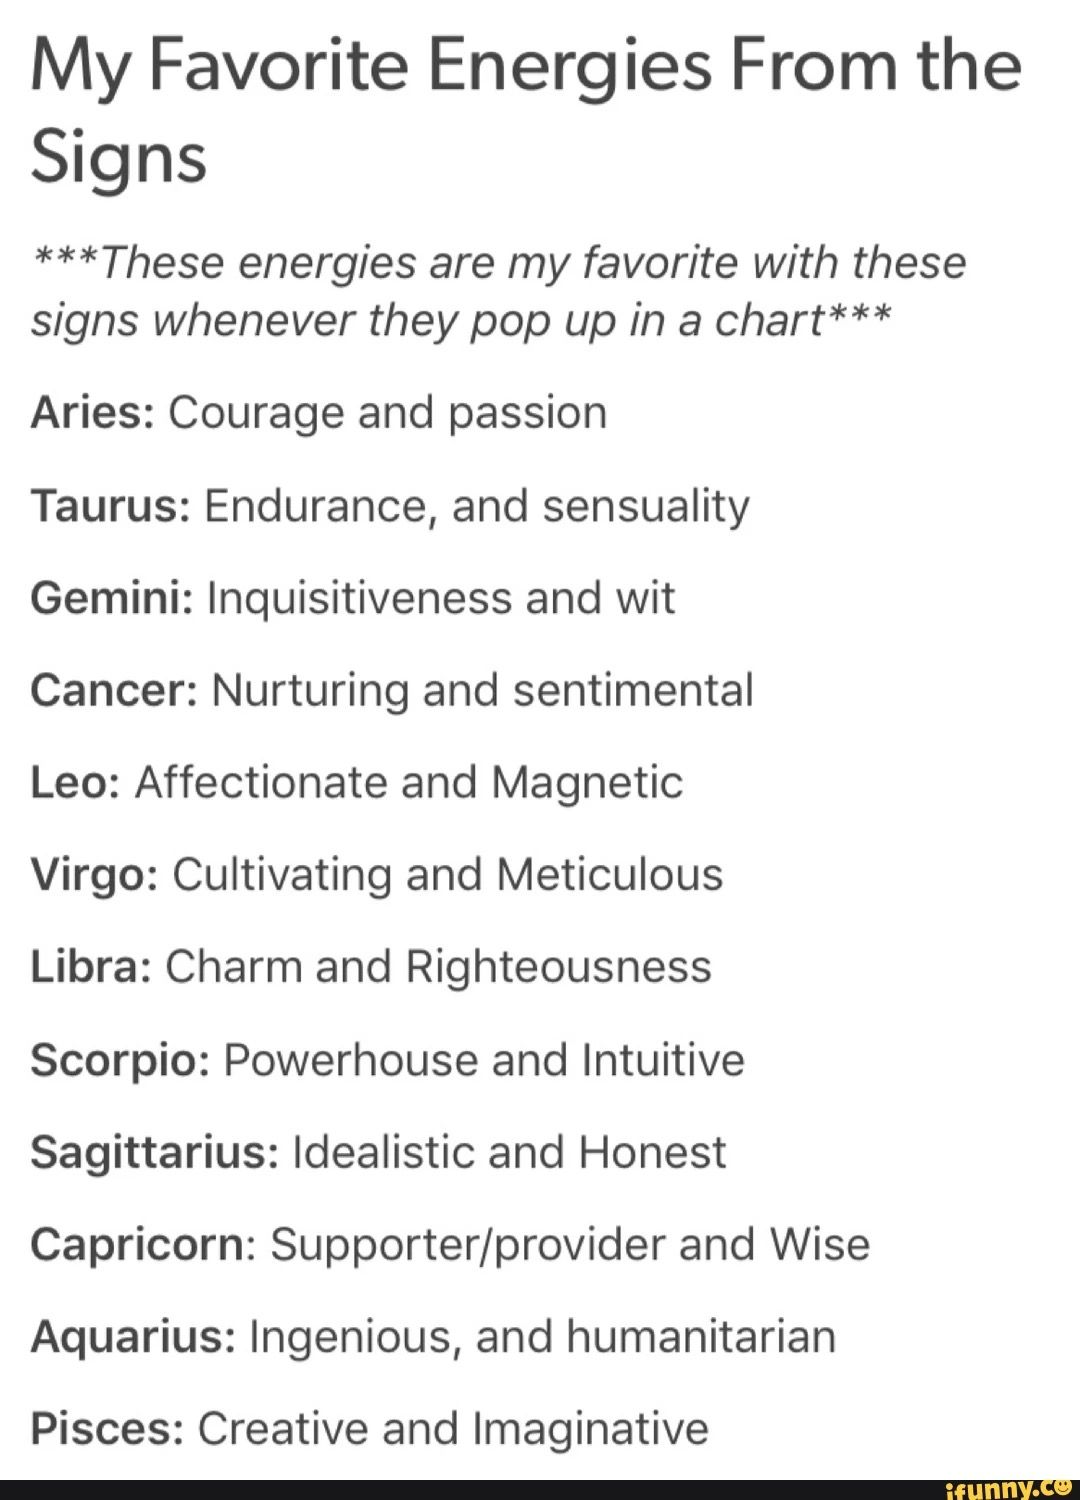 So true LIBRA/ My hubby CAPRICORN   HE'S sooo SUPPORTIVE AND CARING